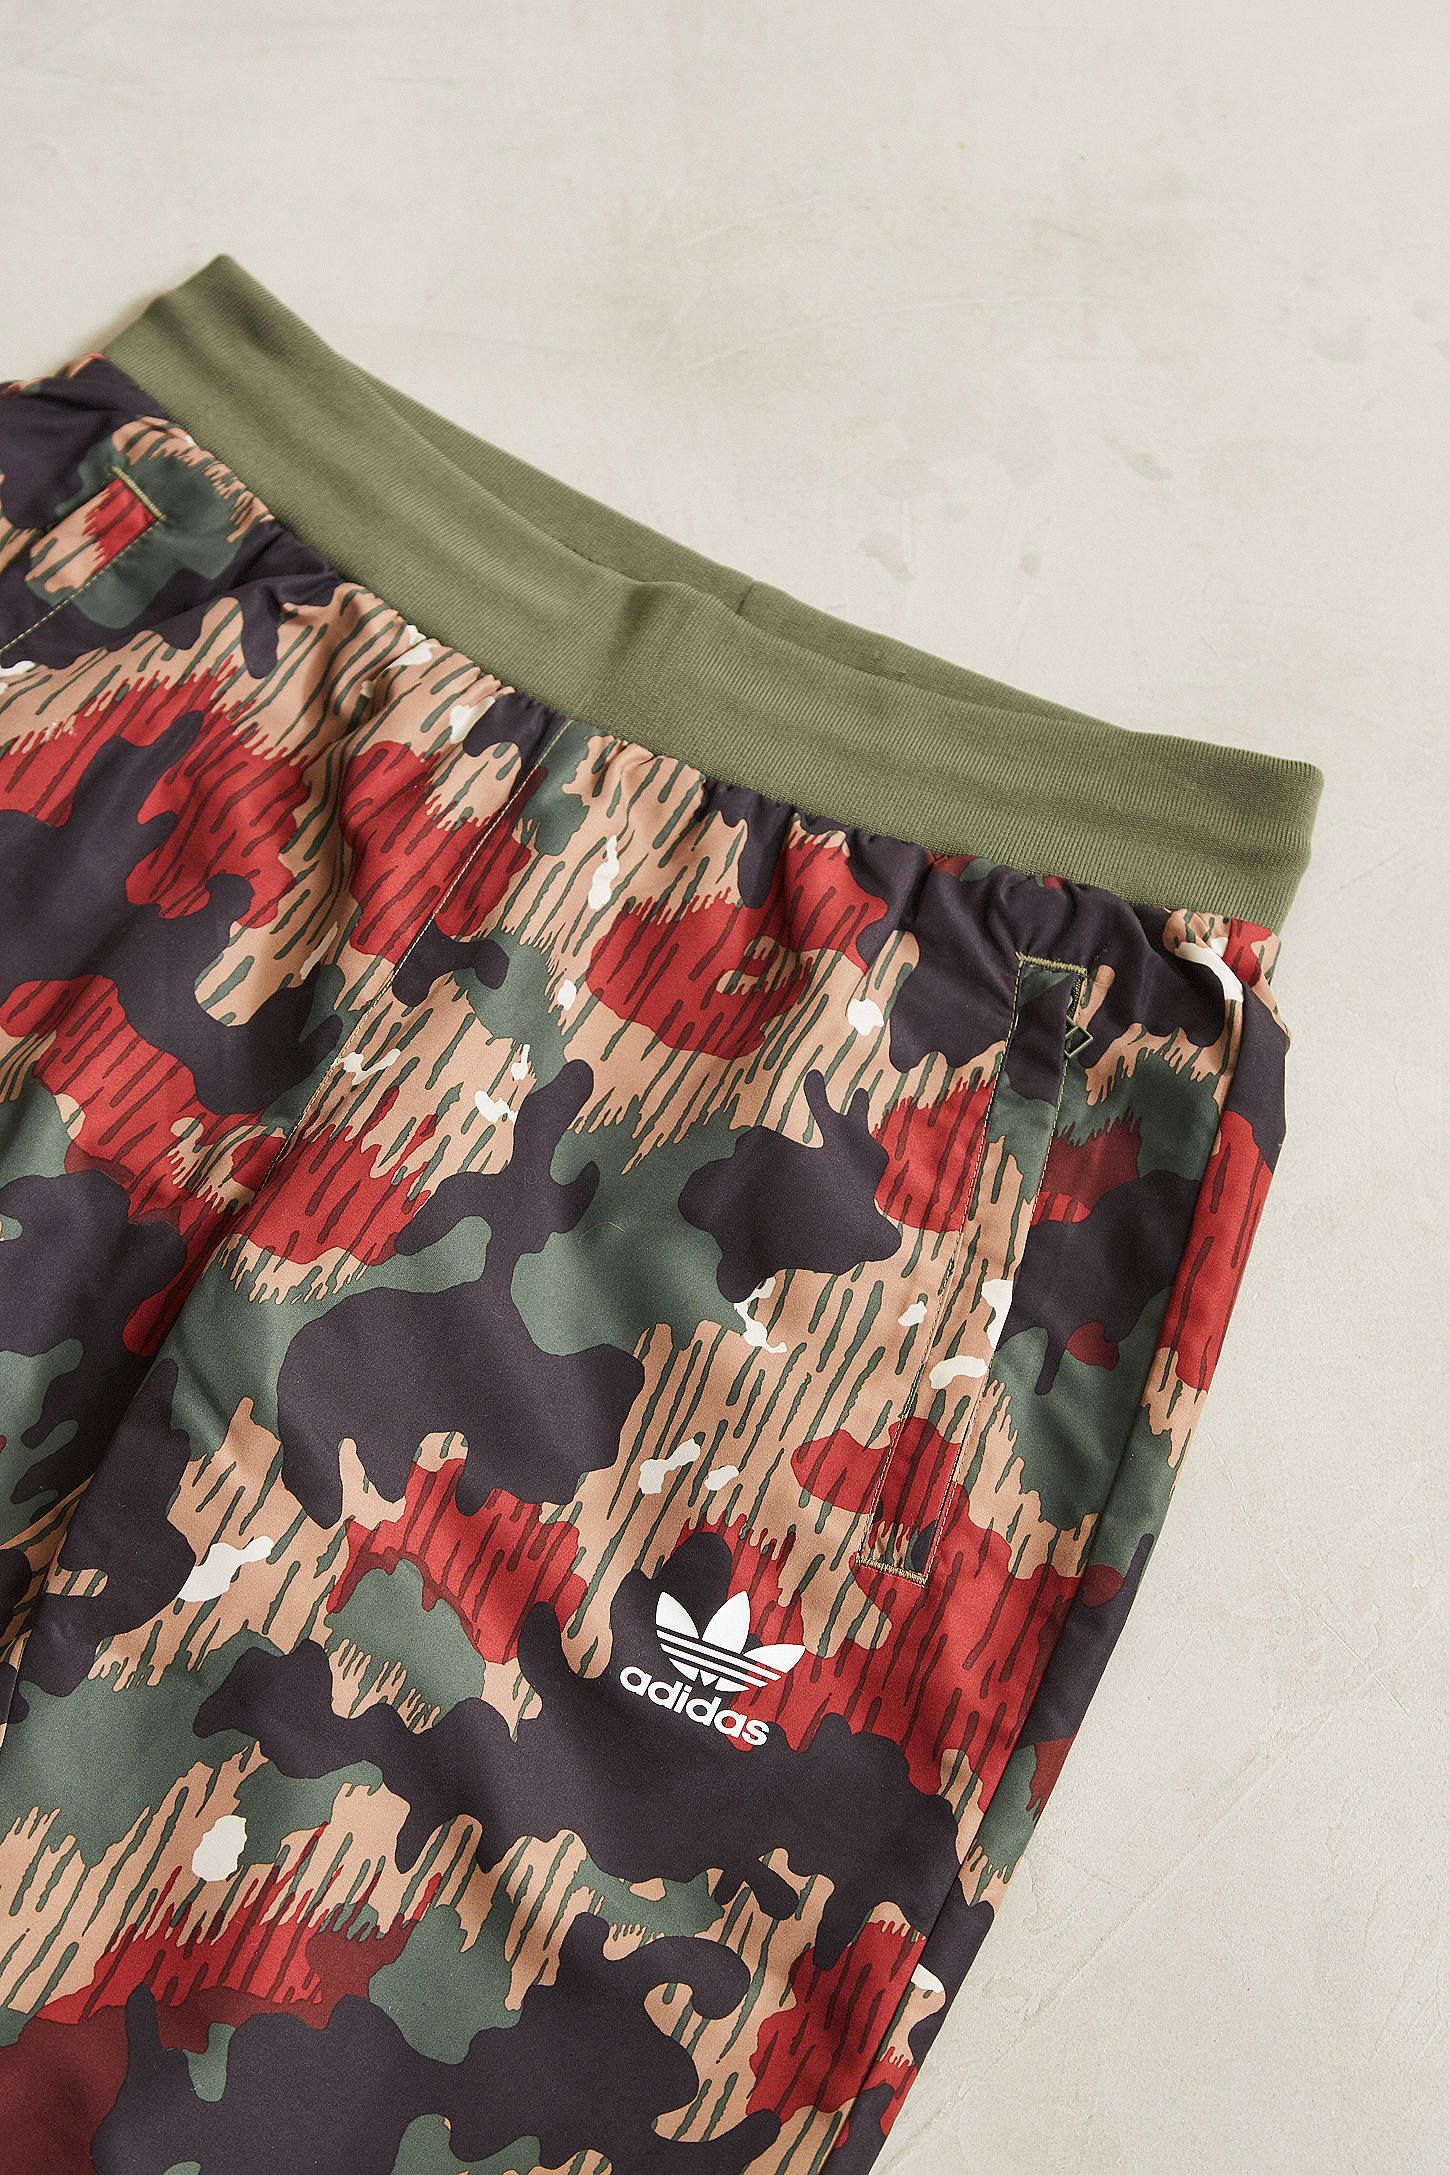 a41cca26e Shop adidas X Pharrell Williams Hu Hiking Camo Wind Pant at Urban  Outfitters today. We carry all the latest styles